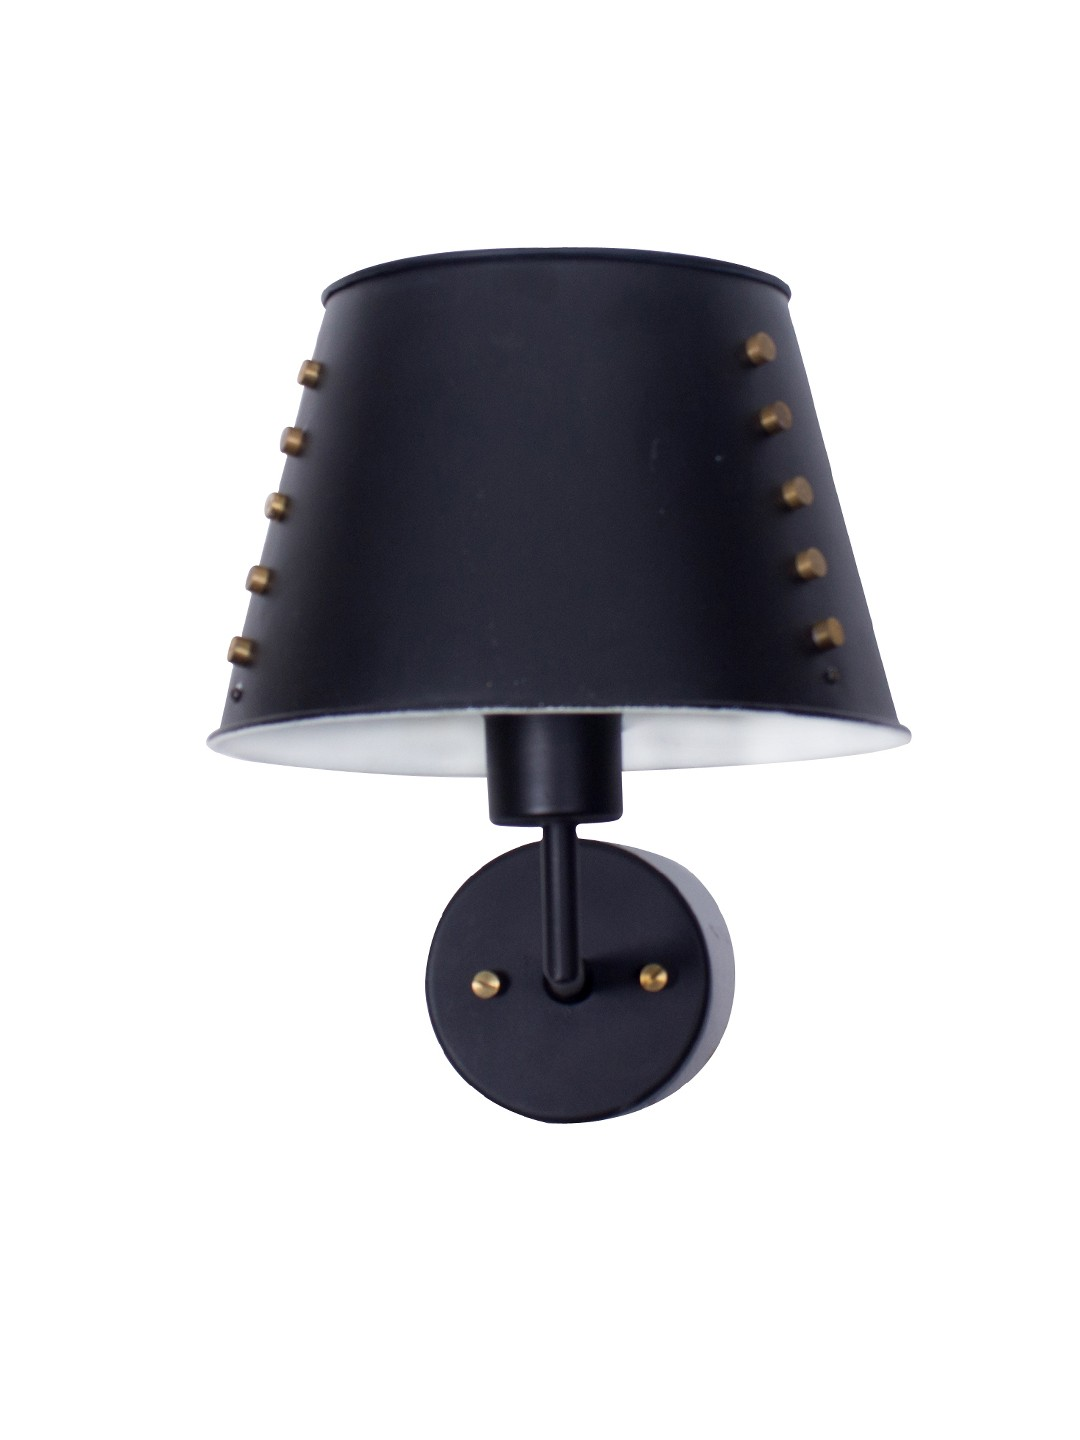 Industrial Black Tapered Shade Wall Lamp with Brass Rivets